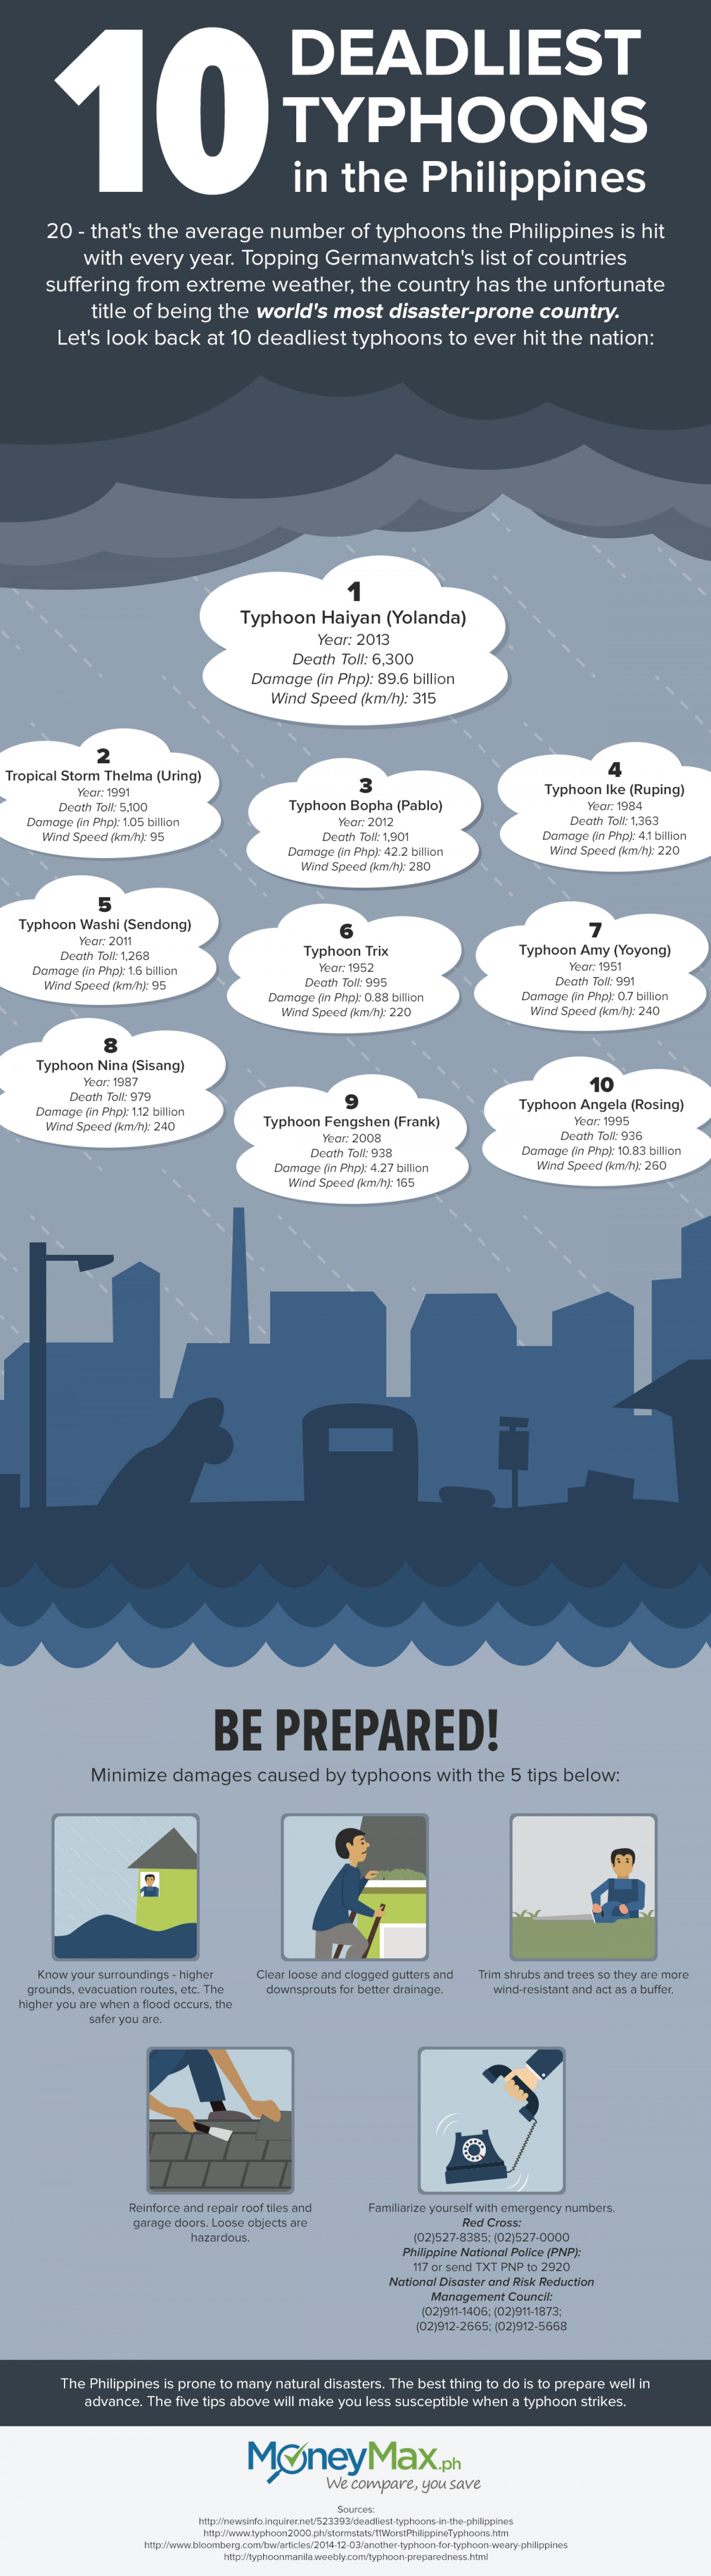 The 10 Deadliest Typhoons In The Philippines Infographic